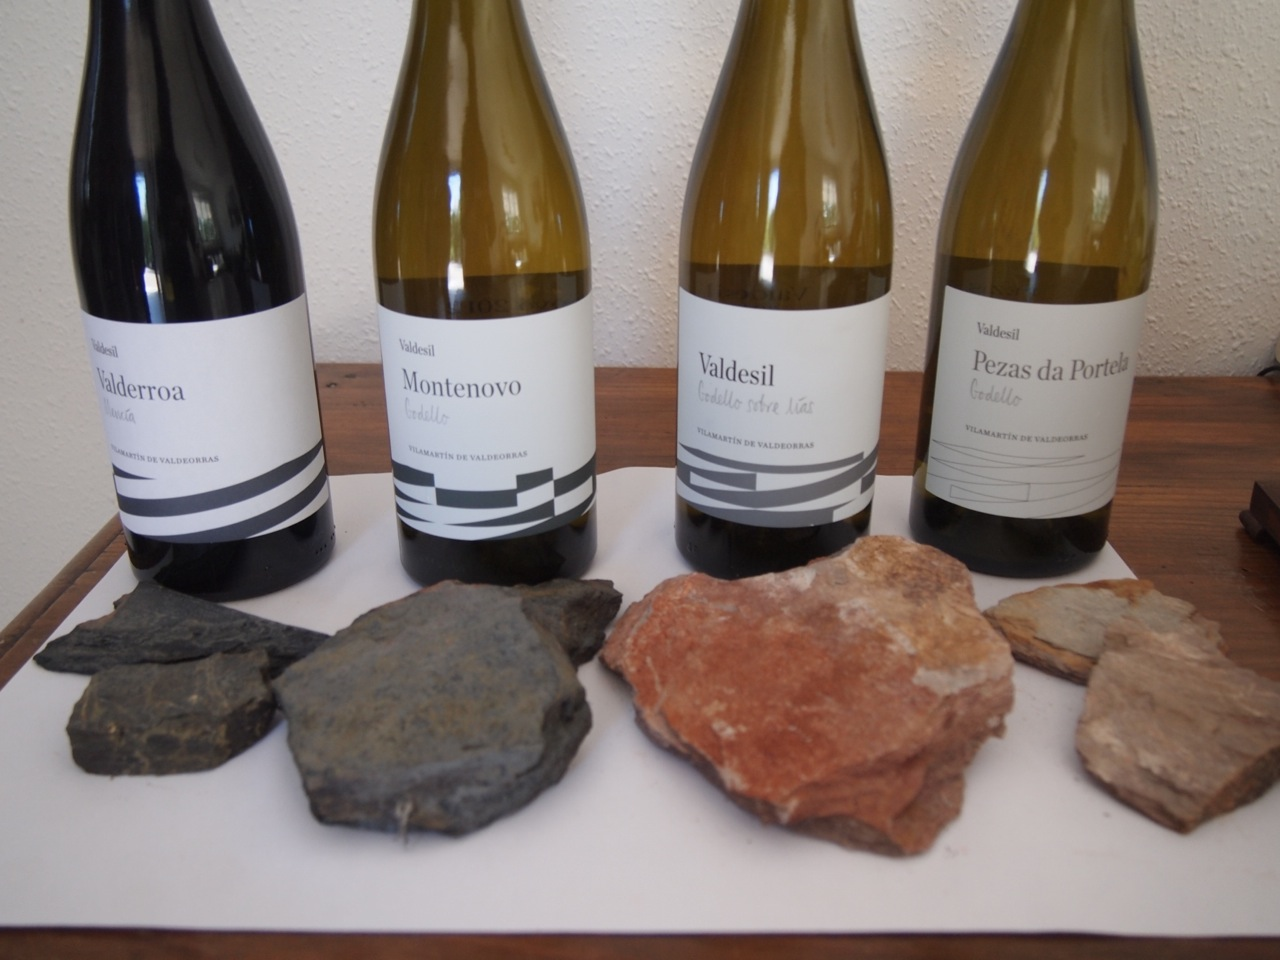 The labels at Valdesil do a good job of portraying the different soiltypes in an artistic way